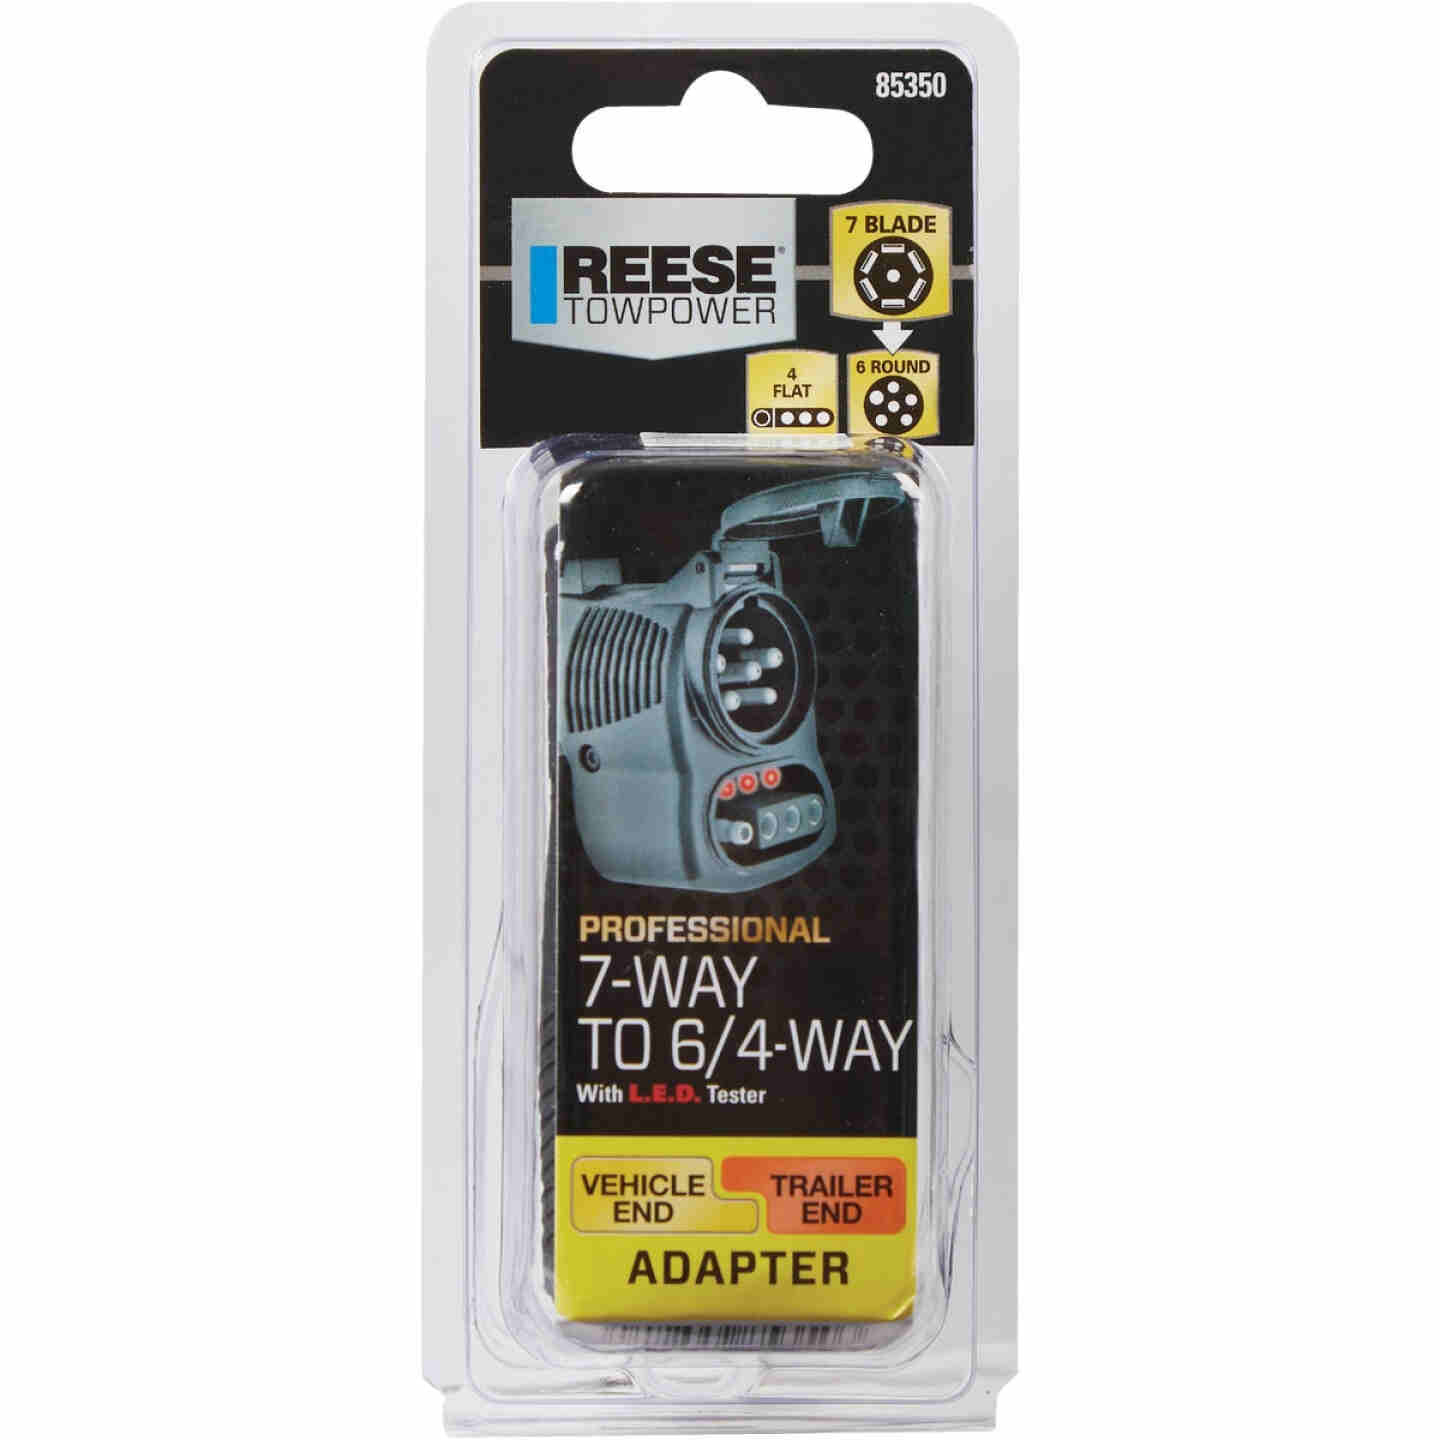 Reese Towpower 7-Blade to 6-Round and 4-Flat Plug-In Adapter Image 2